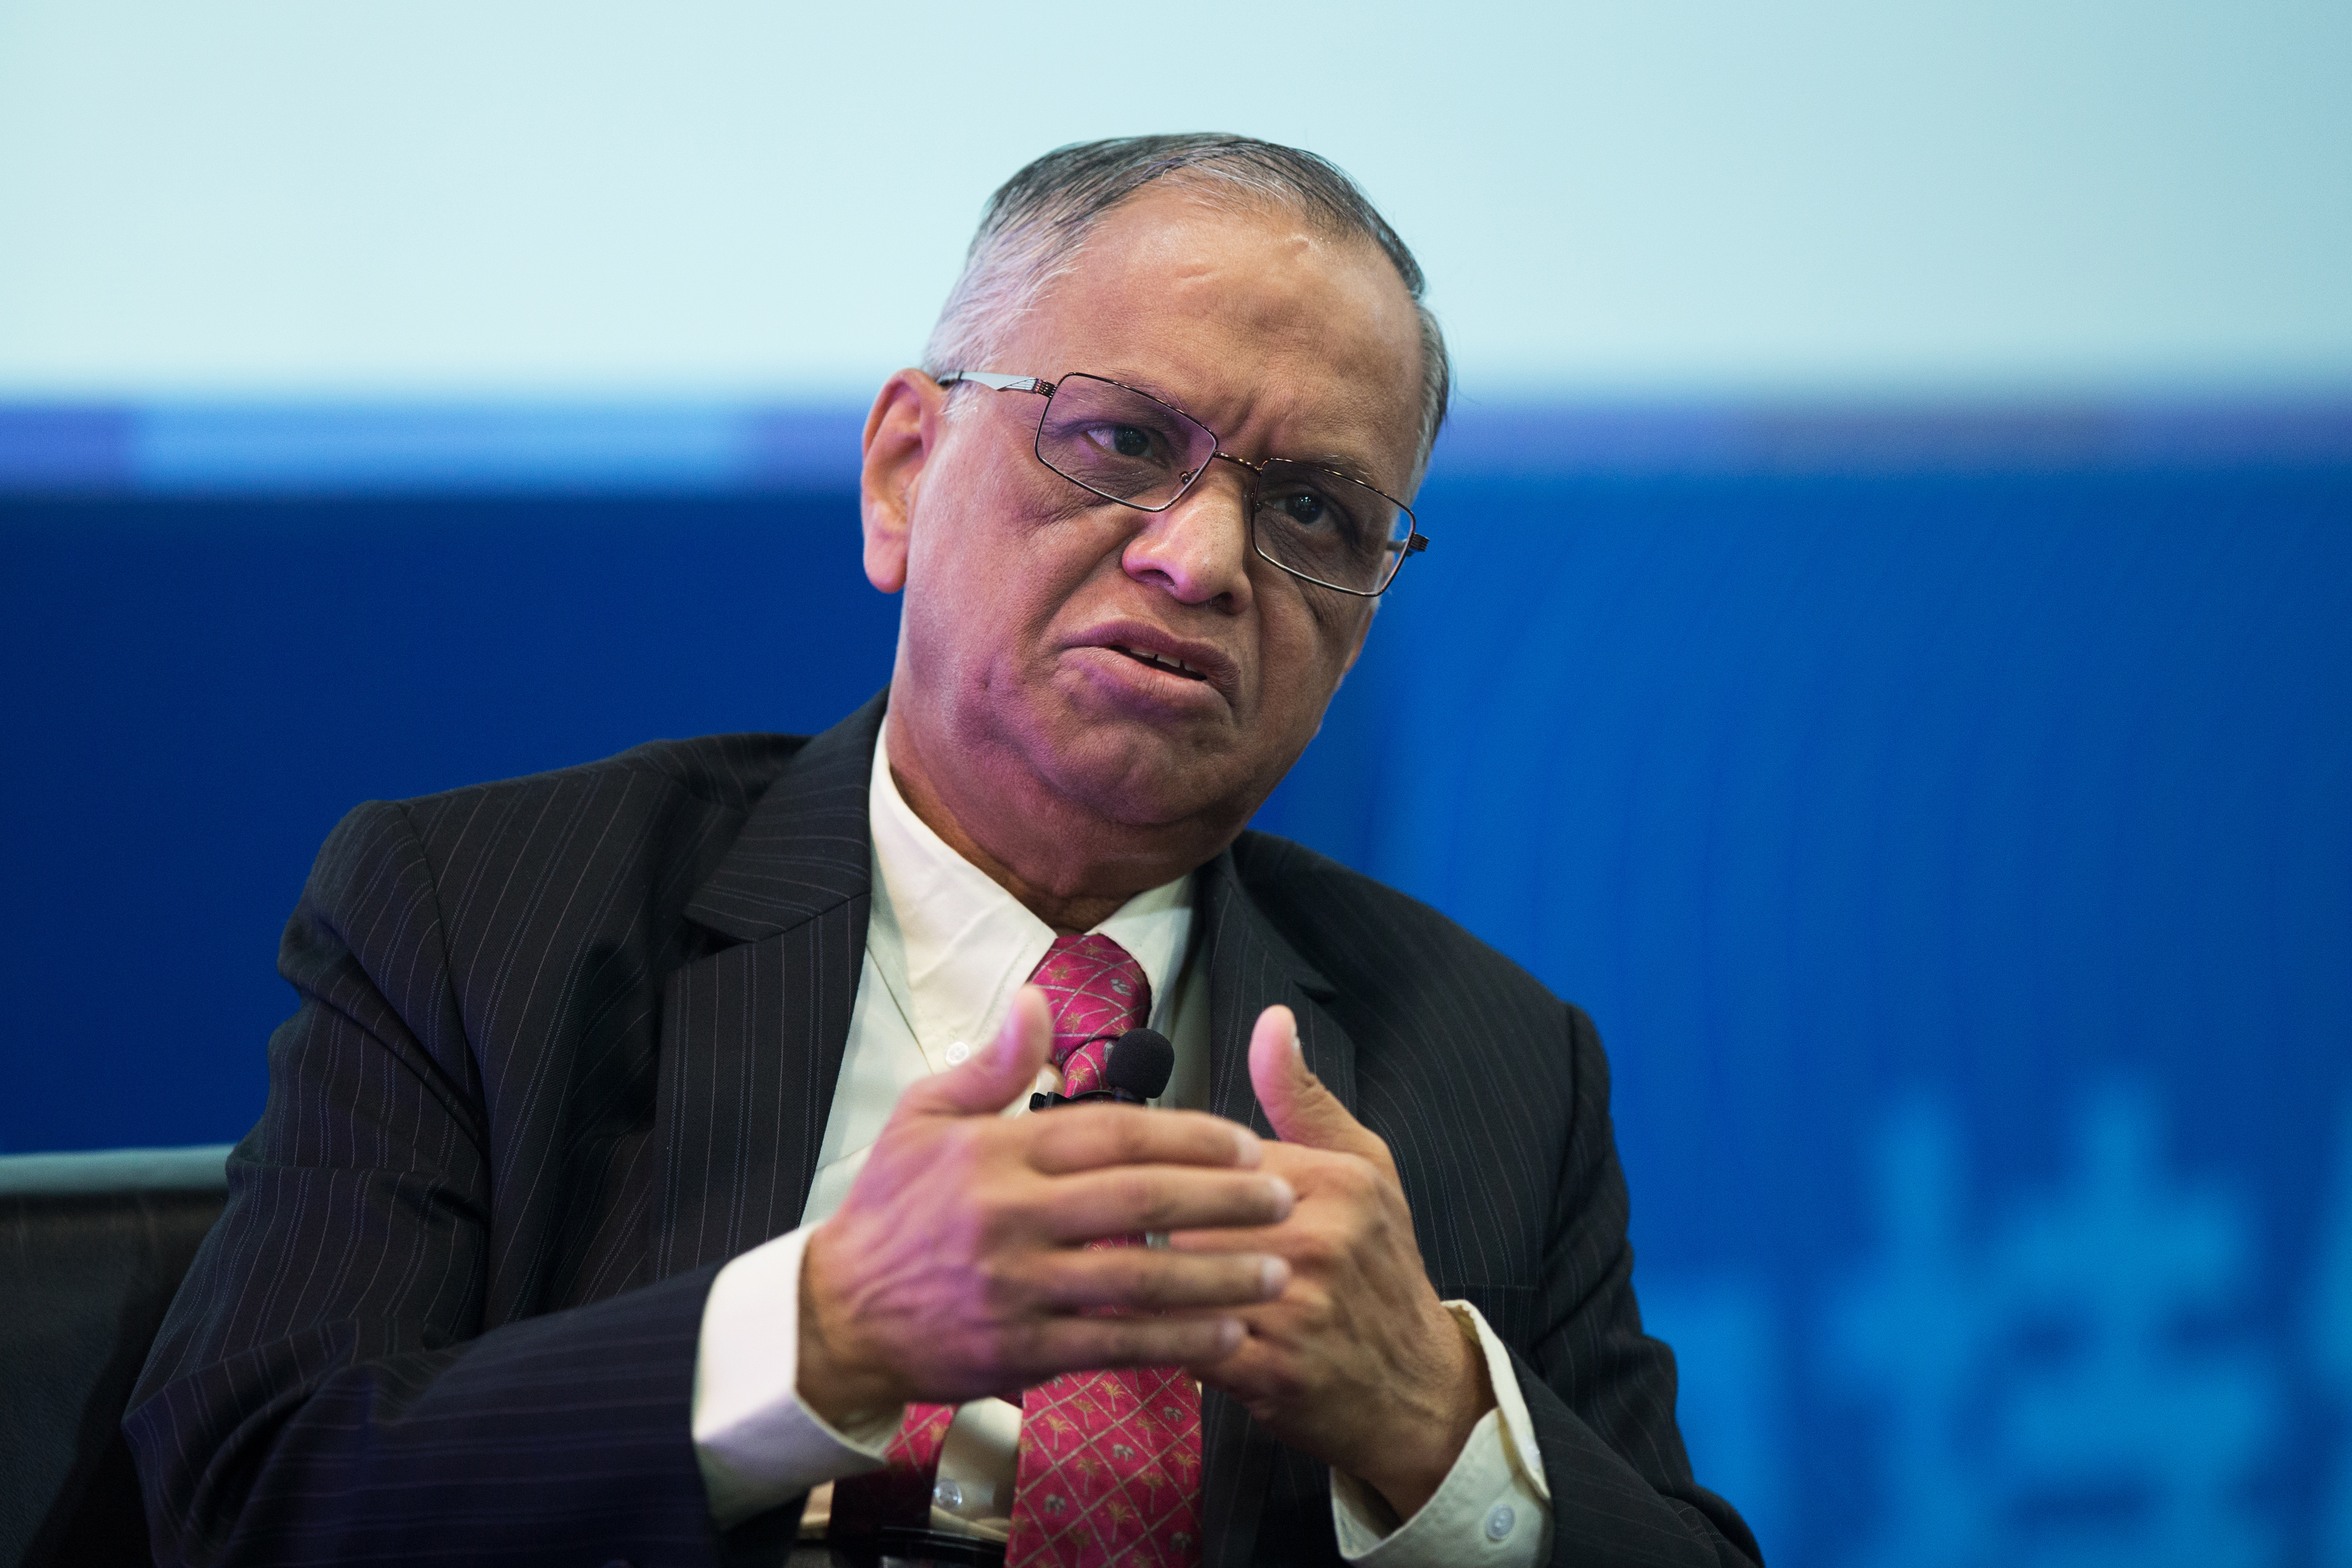 N.R. Narayana Murthy, co-founder and chairman of Infosys, gestures as he speaks during the Hong Kong Asian Financial Forum in Hong Kong on Jan. 19, 2015